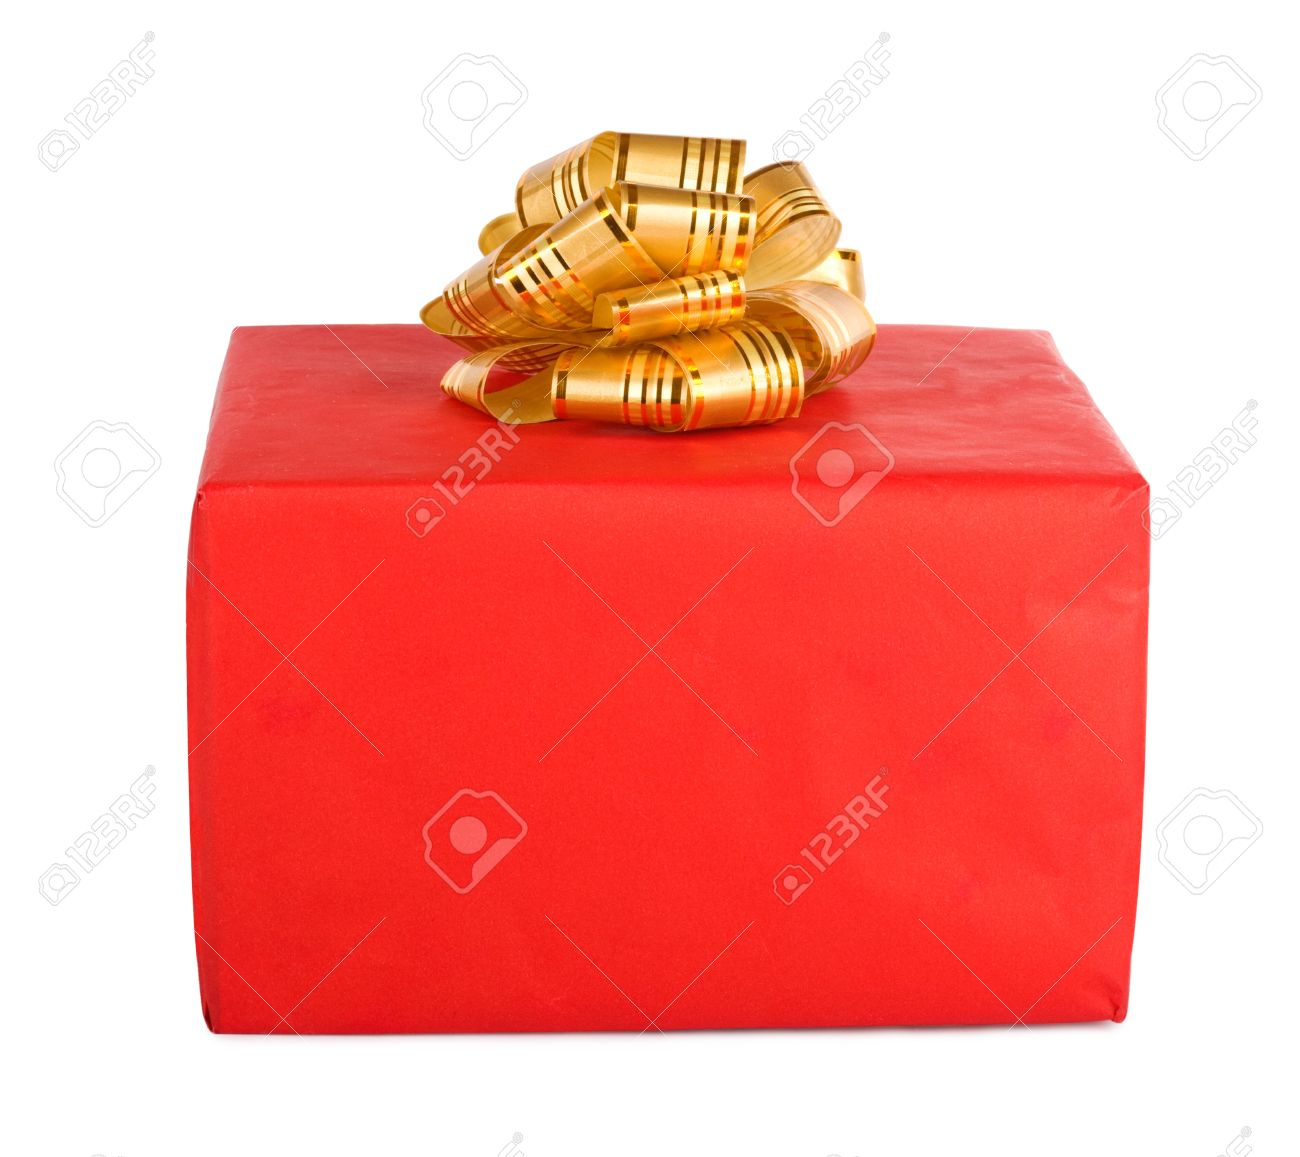 Holiday gift box decorated with ribbon isolated on white background. Stock Photo - 9238472